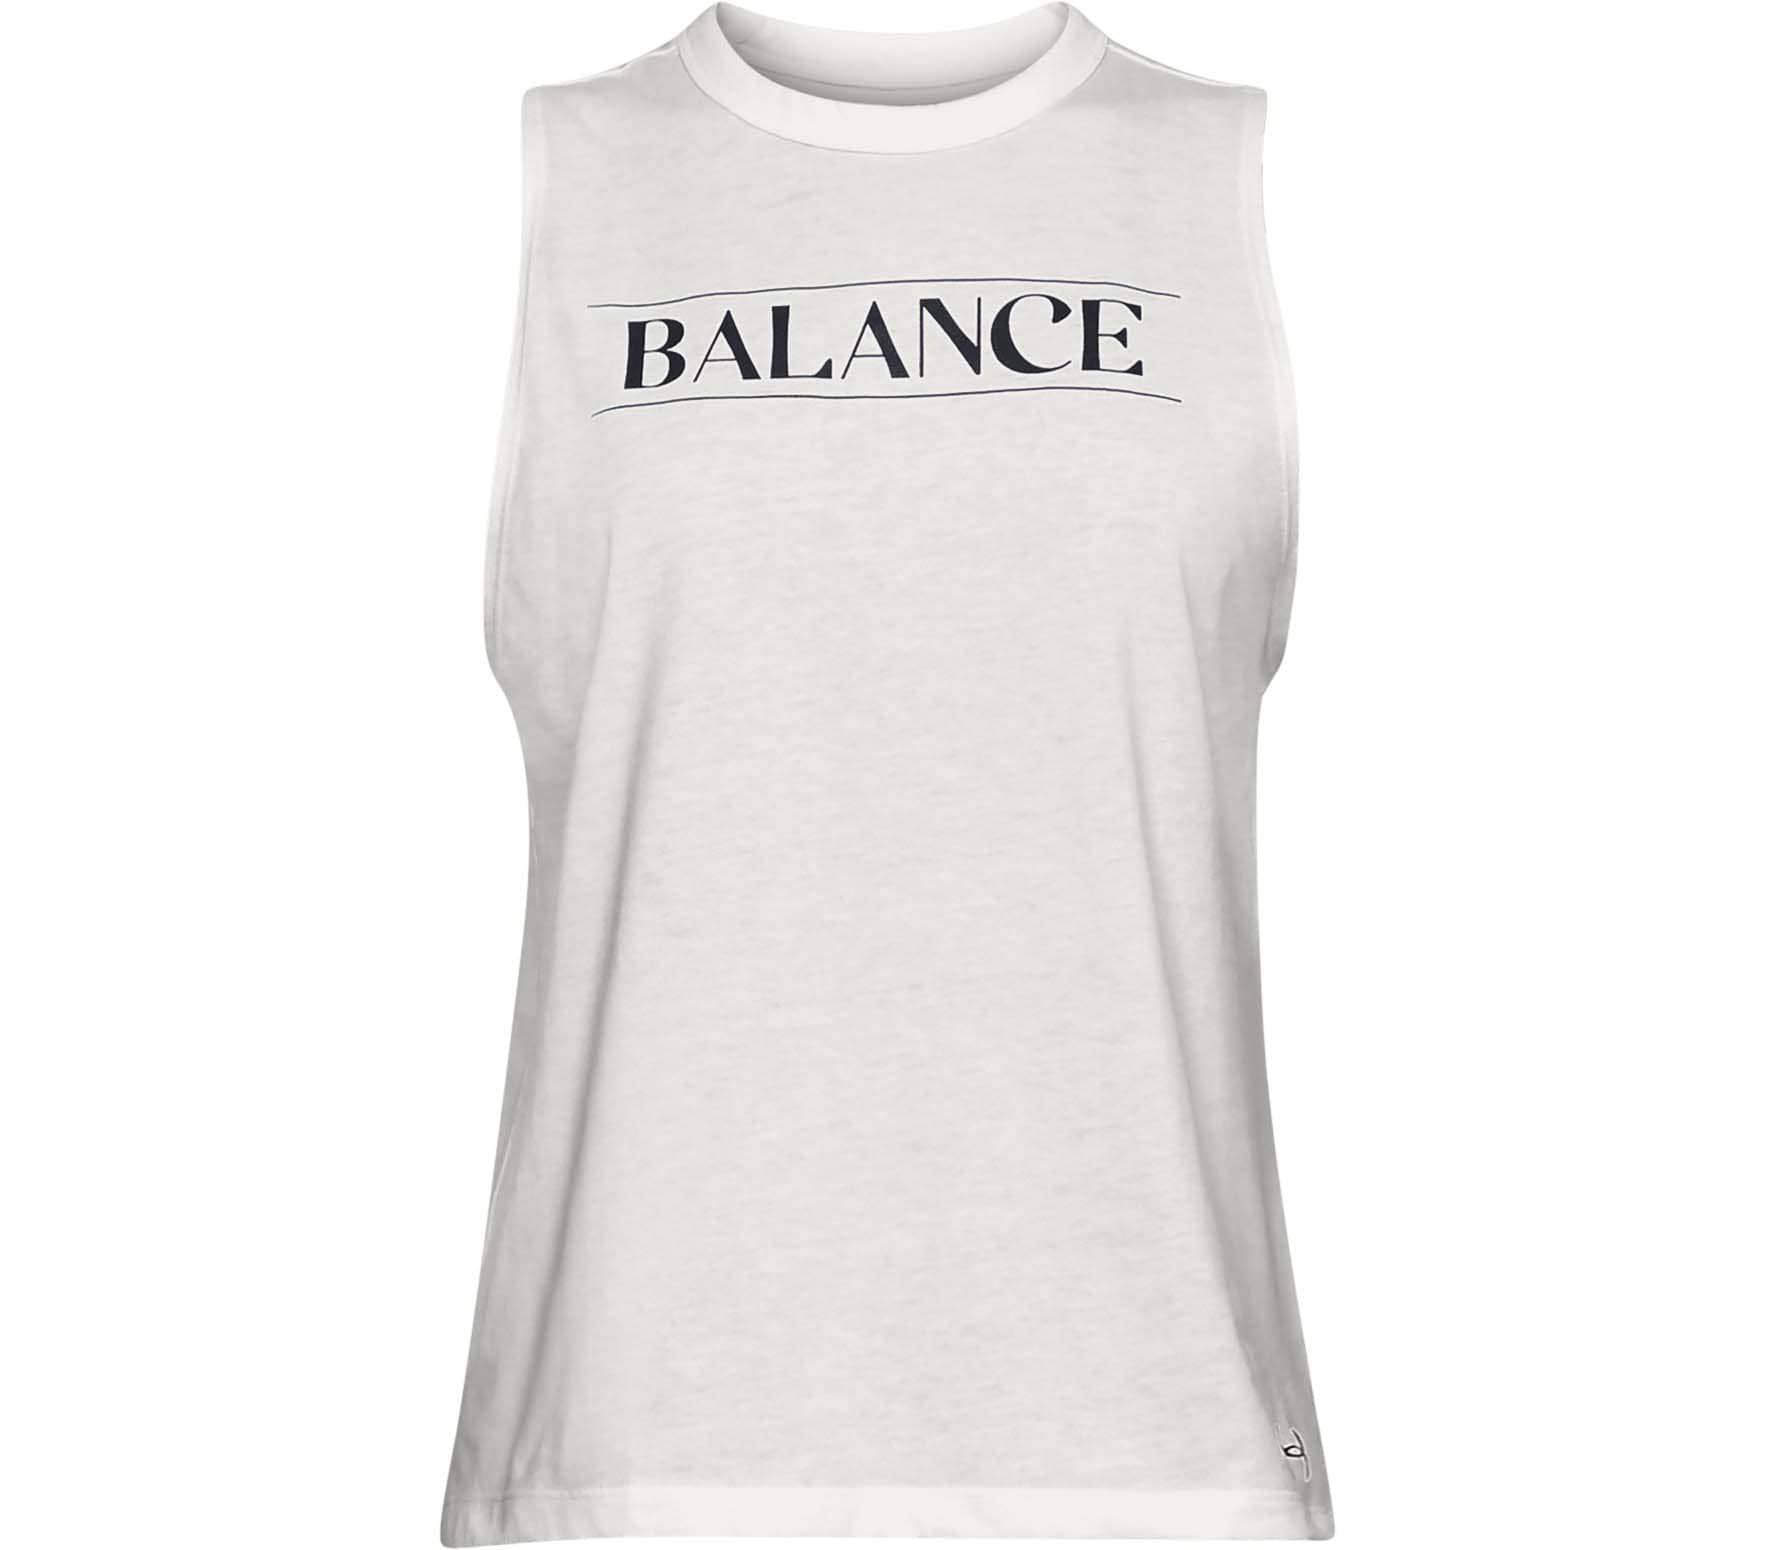 3d38eeb0 Under Armour - Balance Graphic Muscle women's training tank top top (white)